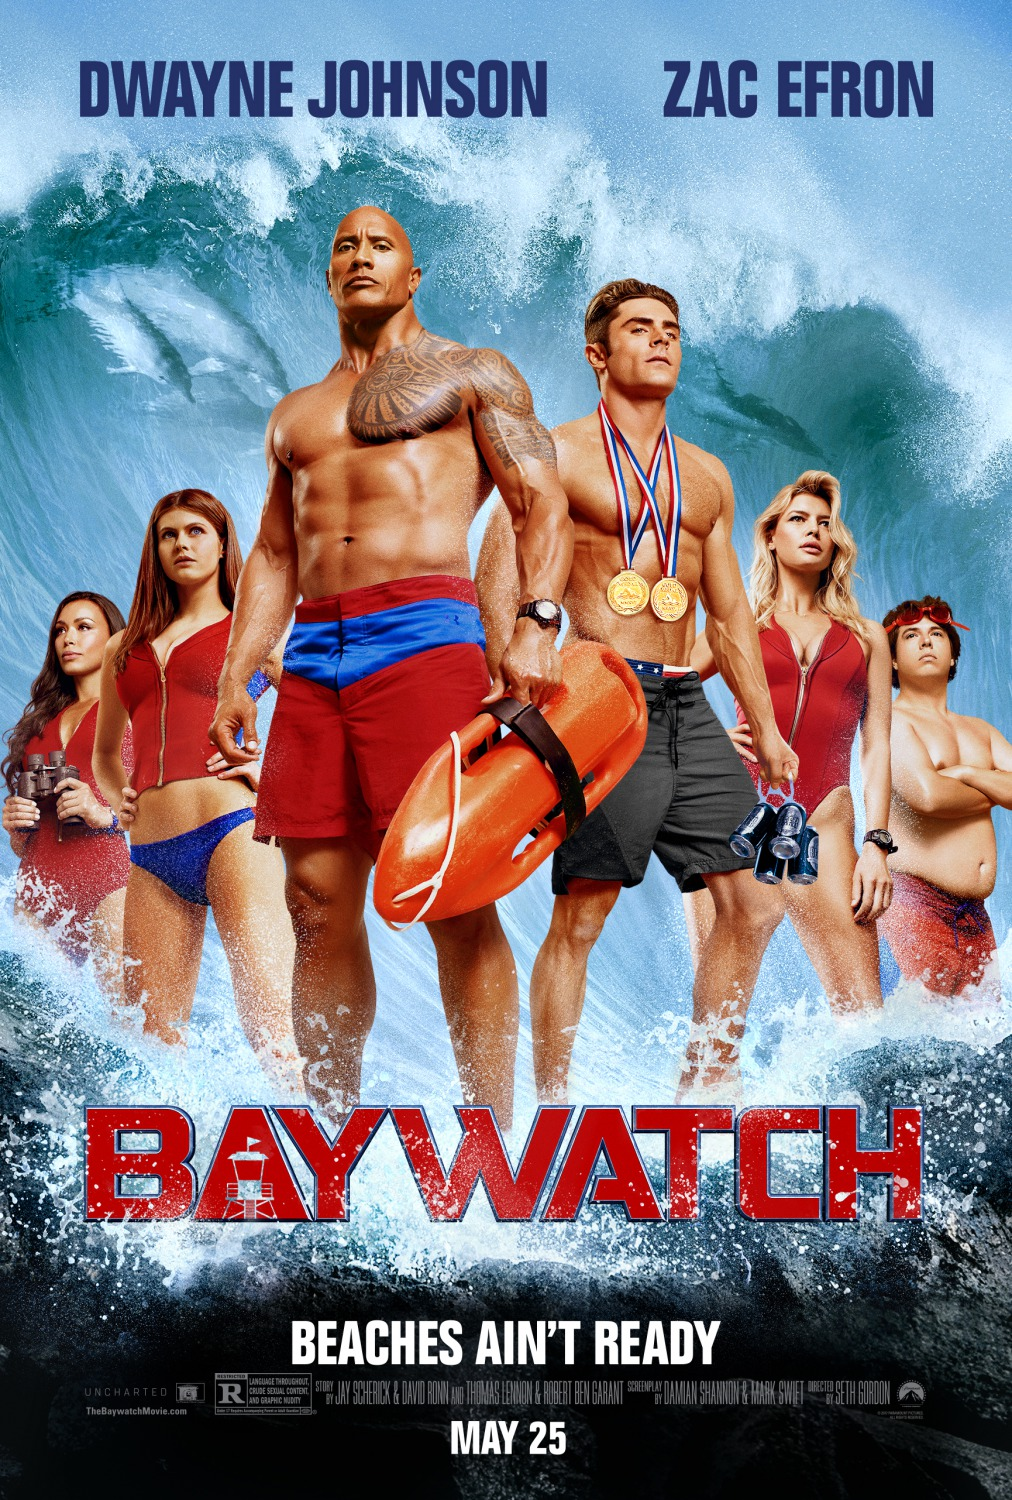 Image result for baywatch movie poster